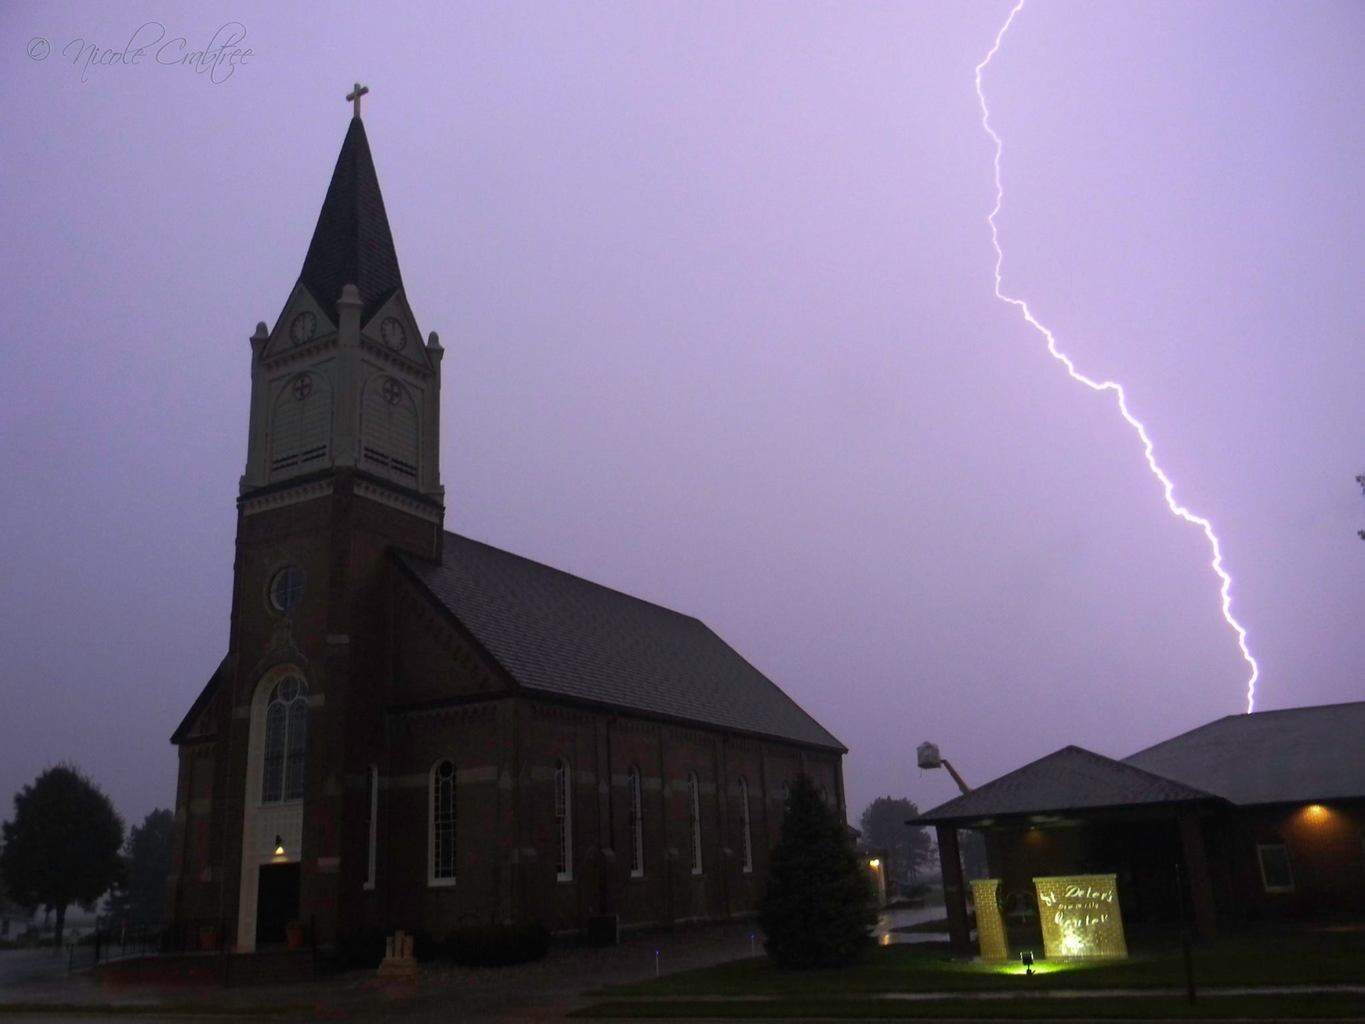 I captured this awesome lightning strike next to St. Peters Church in Jefferson, SD tonight.